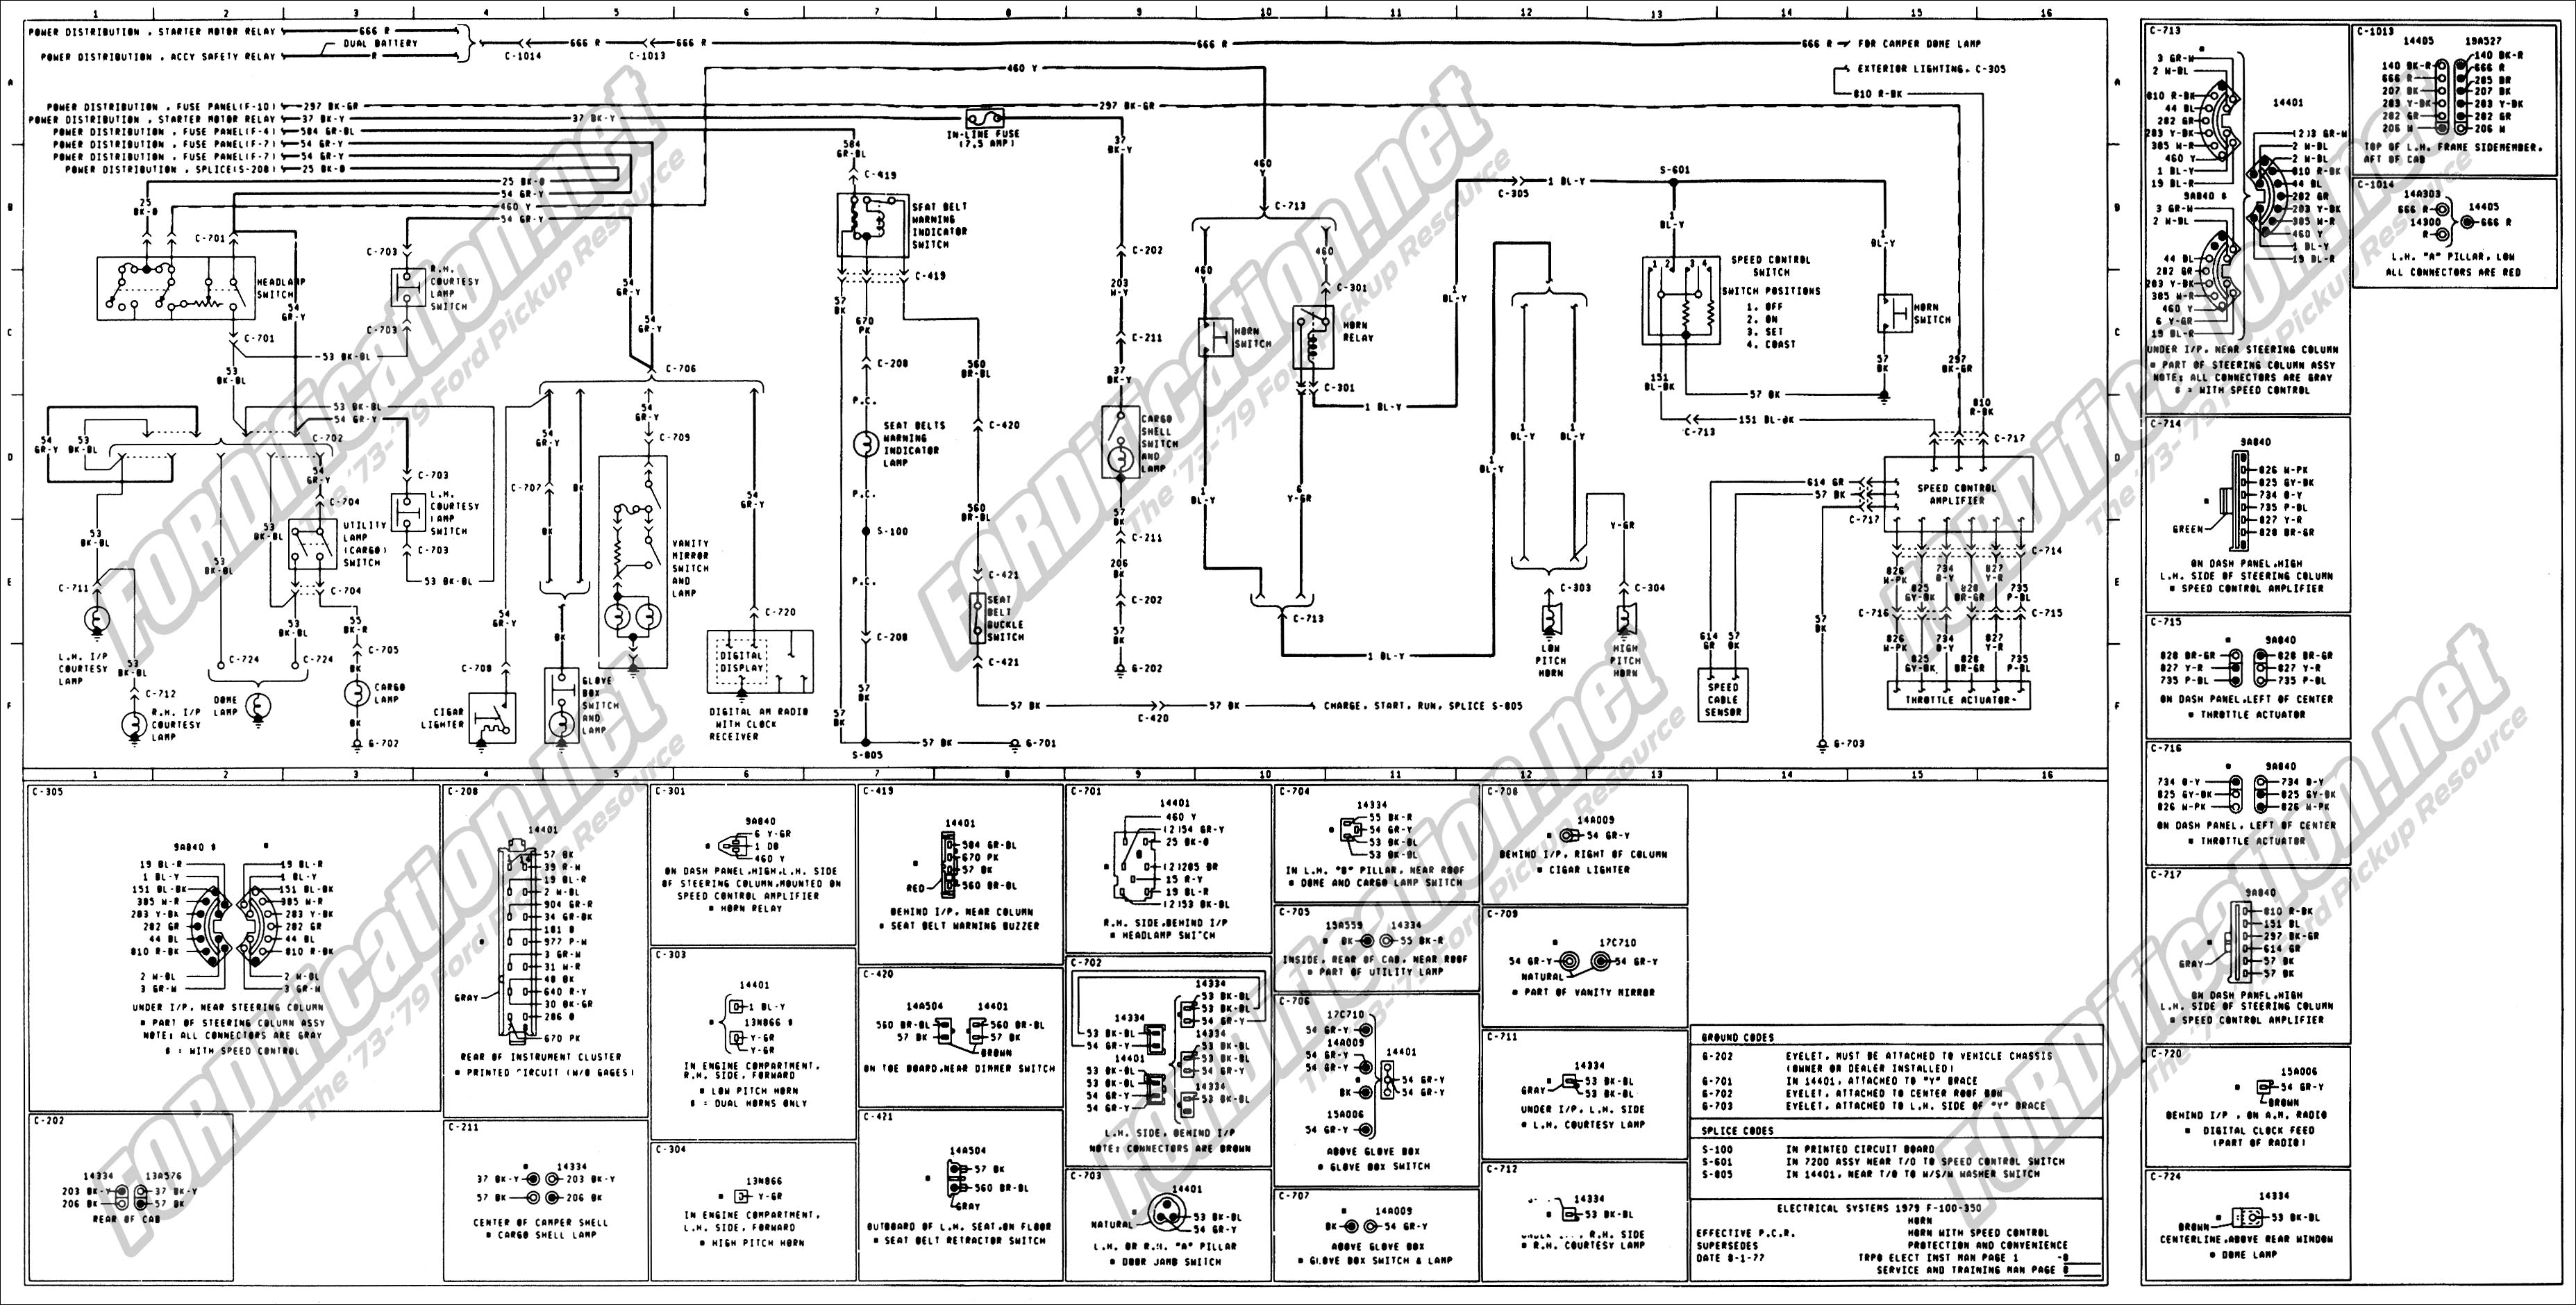 ford vacuum diagrams f 250 351 detailed schematics diagram rh jppastryarts  com 06 ford e350 vacuum